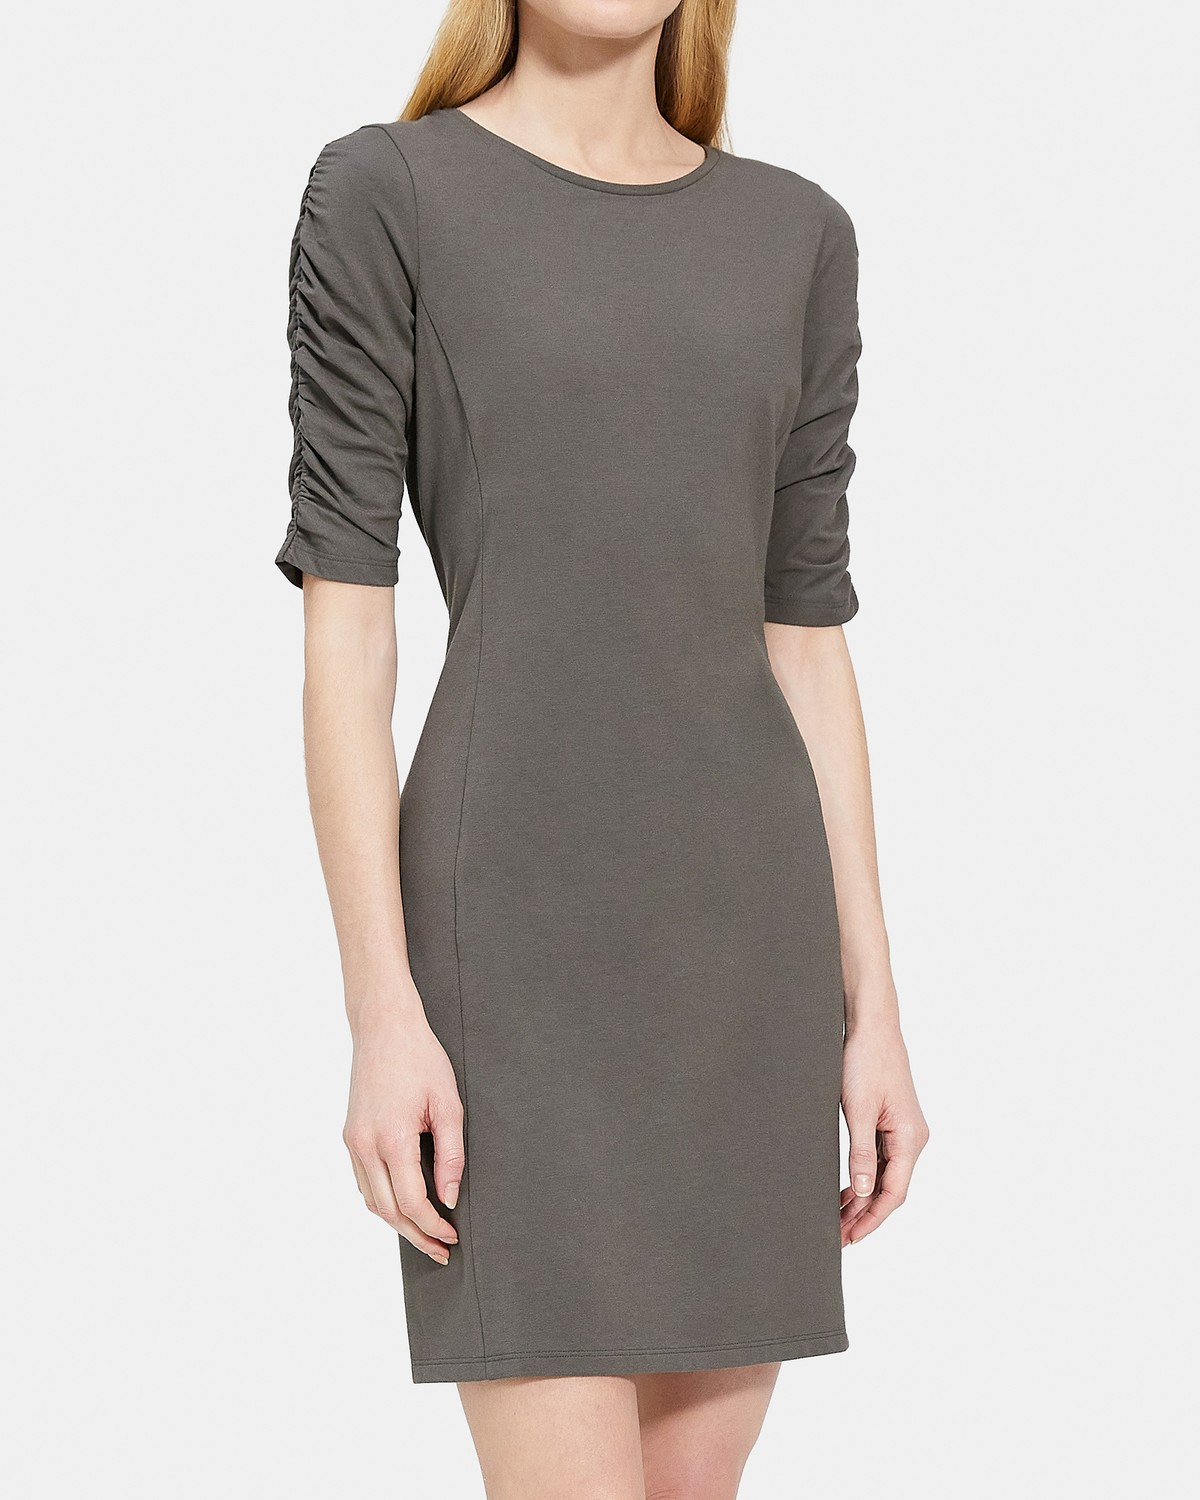 Gathered-Sleeve Dress in Modal-Cotton